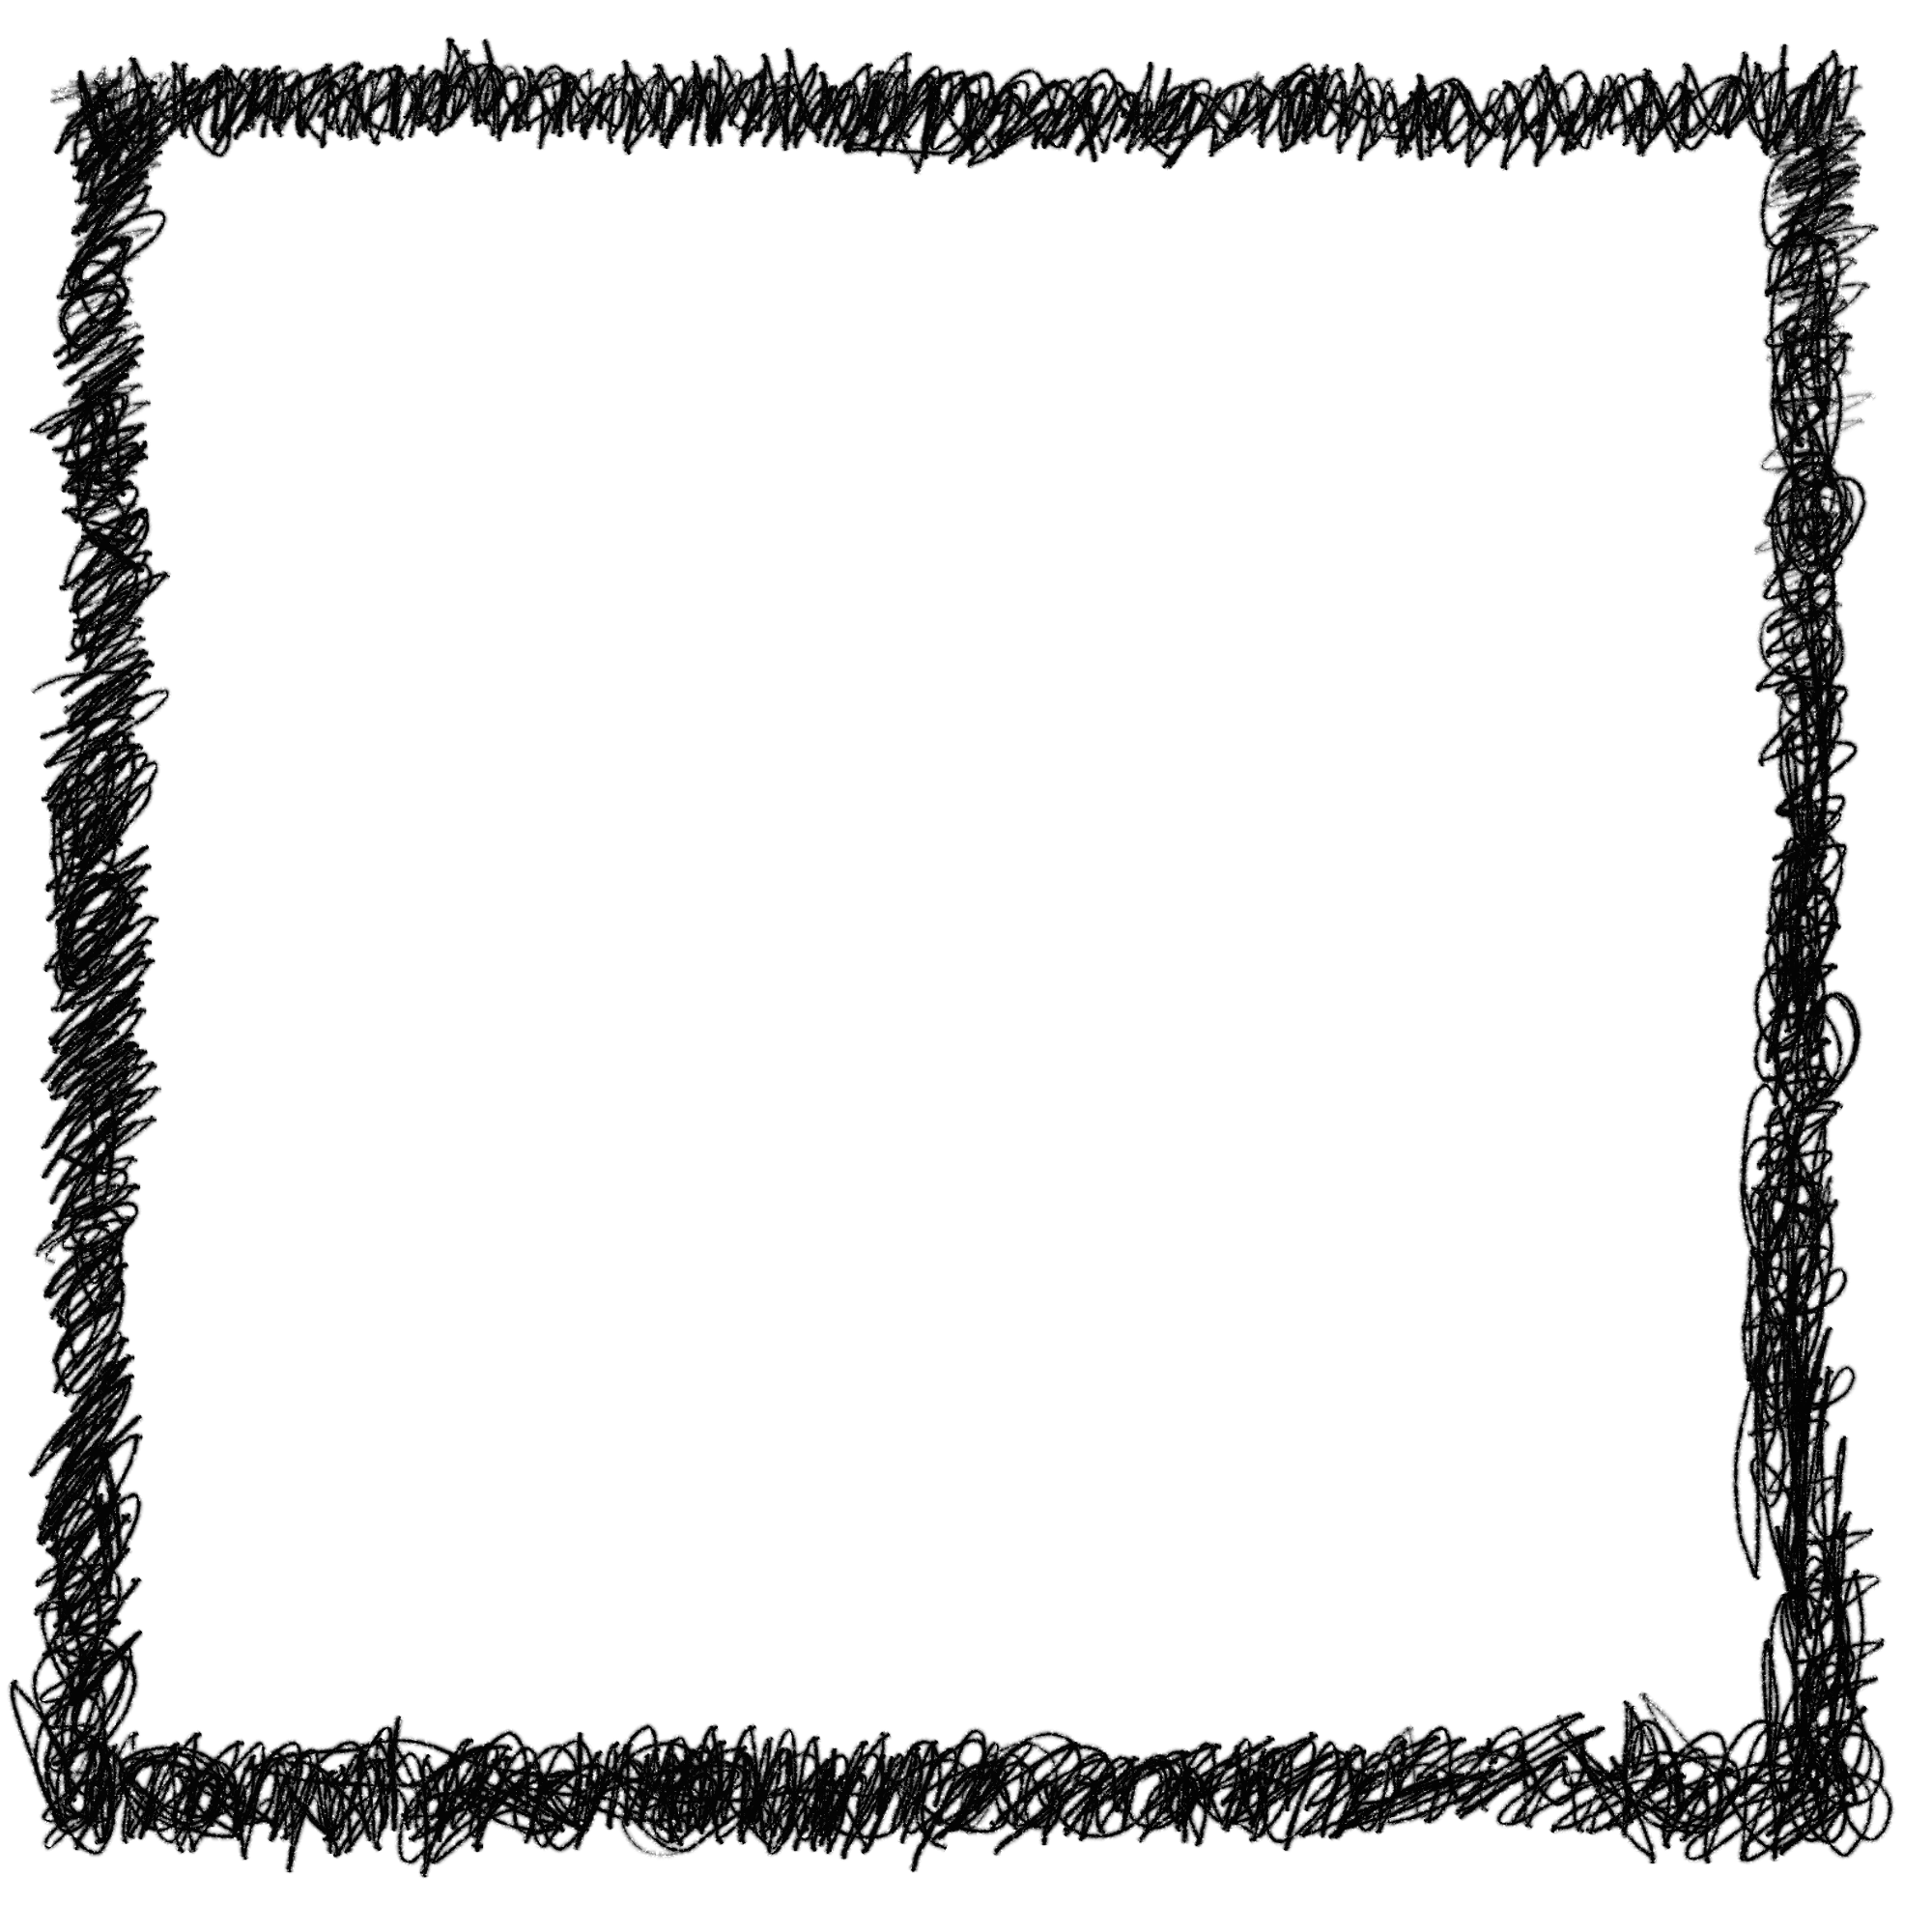 Square frame png.  scribble transparent onlygfx